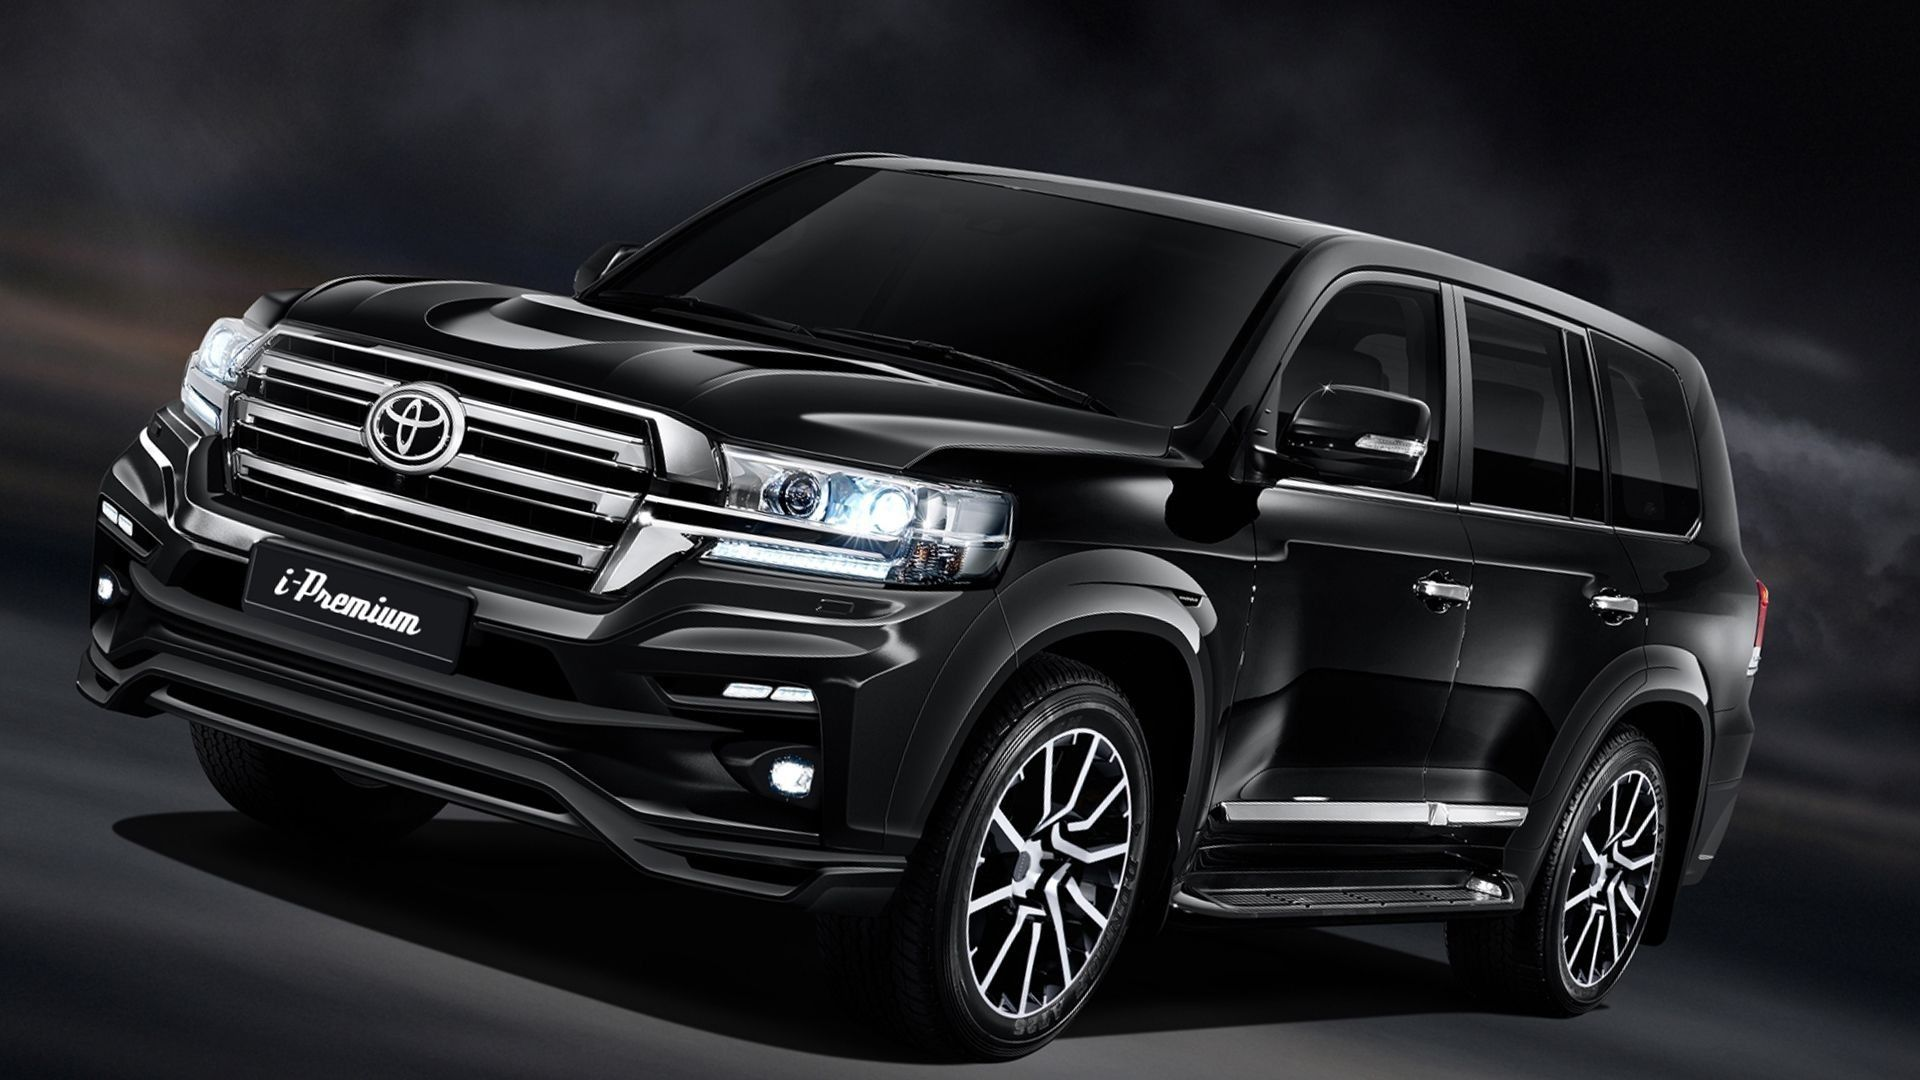 2019 Toyota Landcruiser 200 Series Price And Release Date In 2020 New Toyota Land Cruiser Land Cruiser Land Cruiser 200